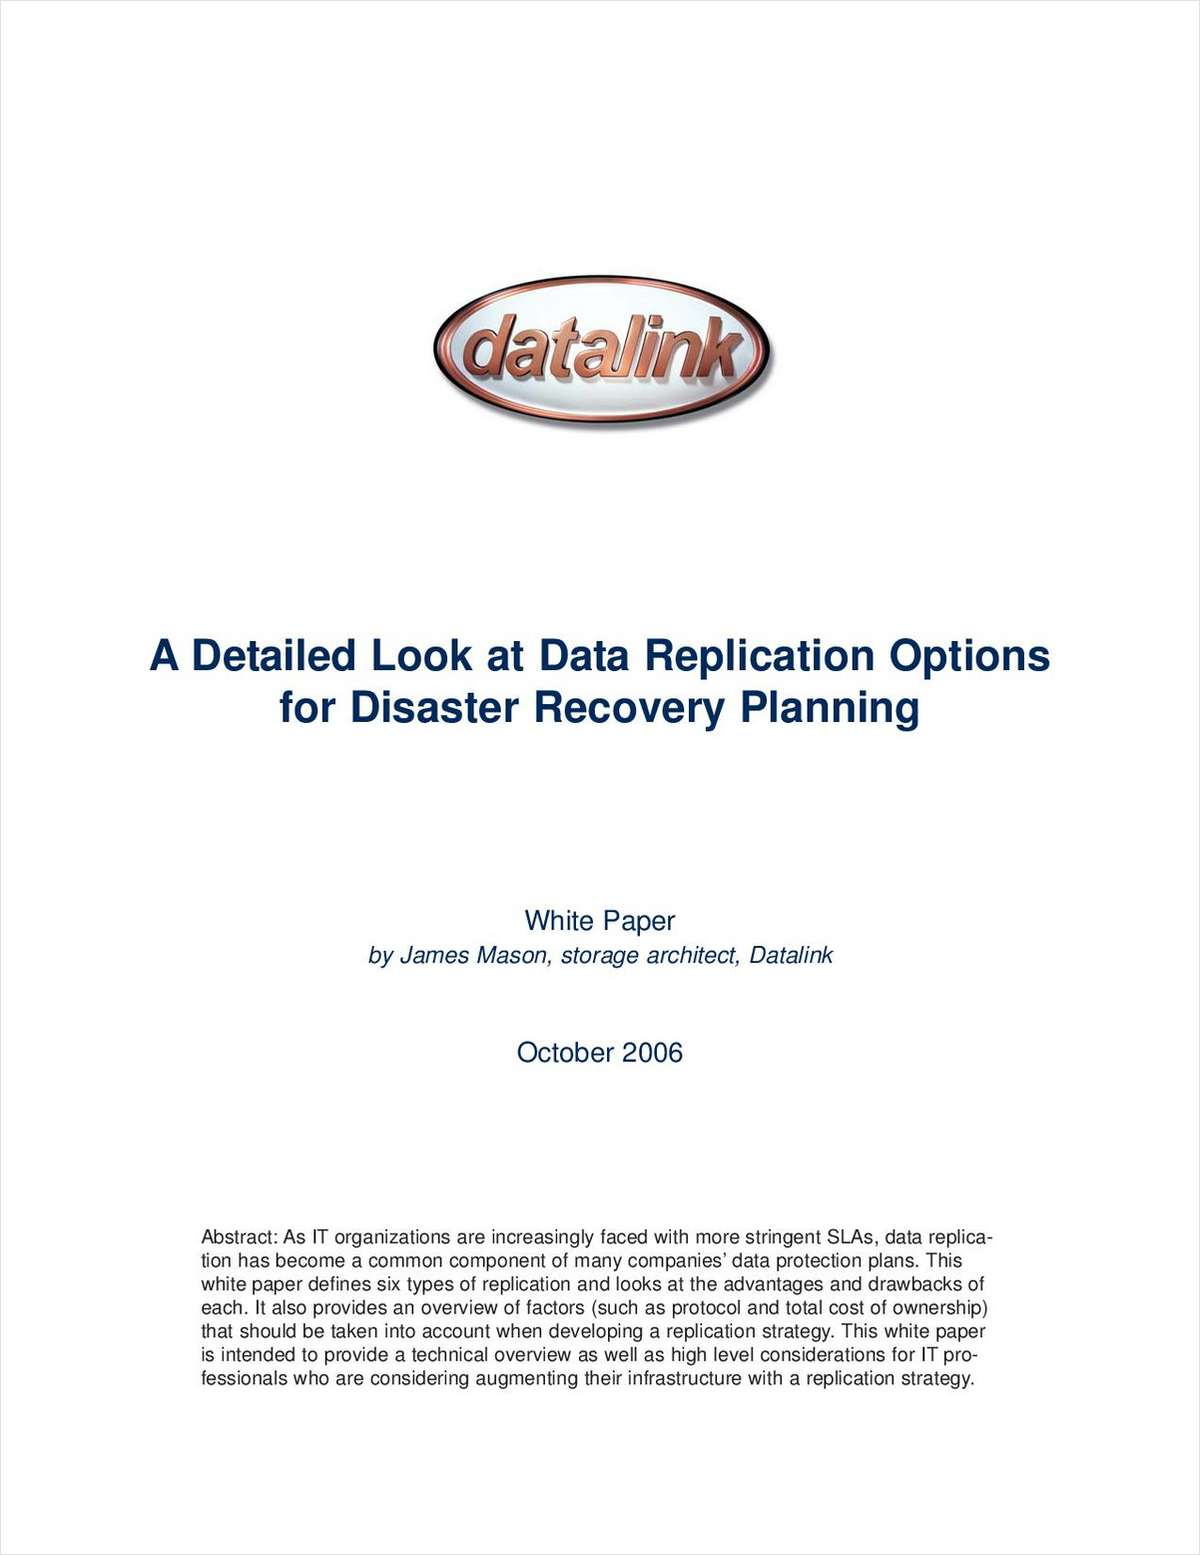 A Detailed Look at Data Replication Options for Disaster Recovery Planning